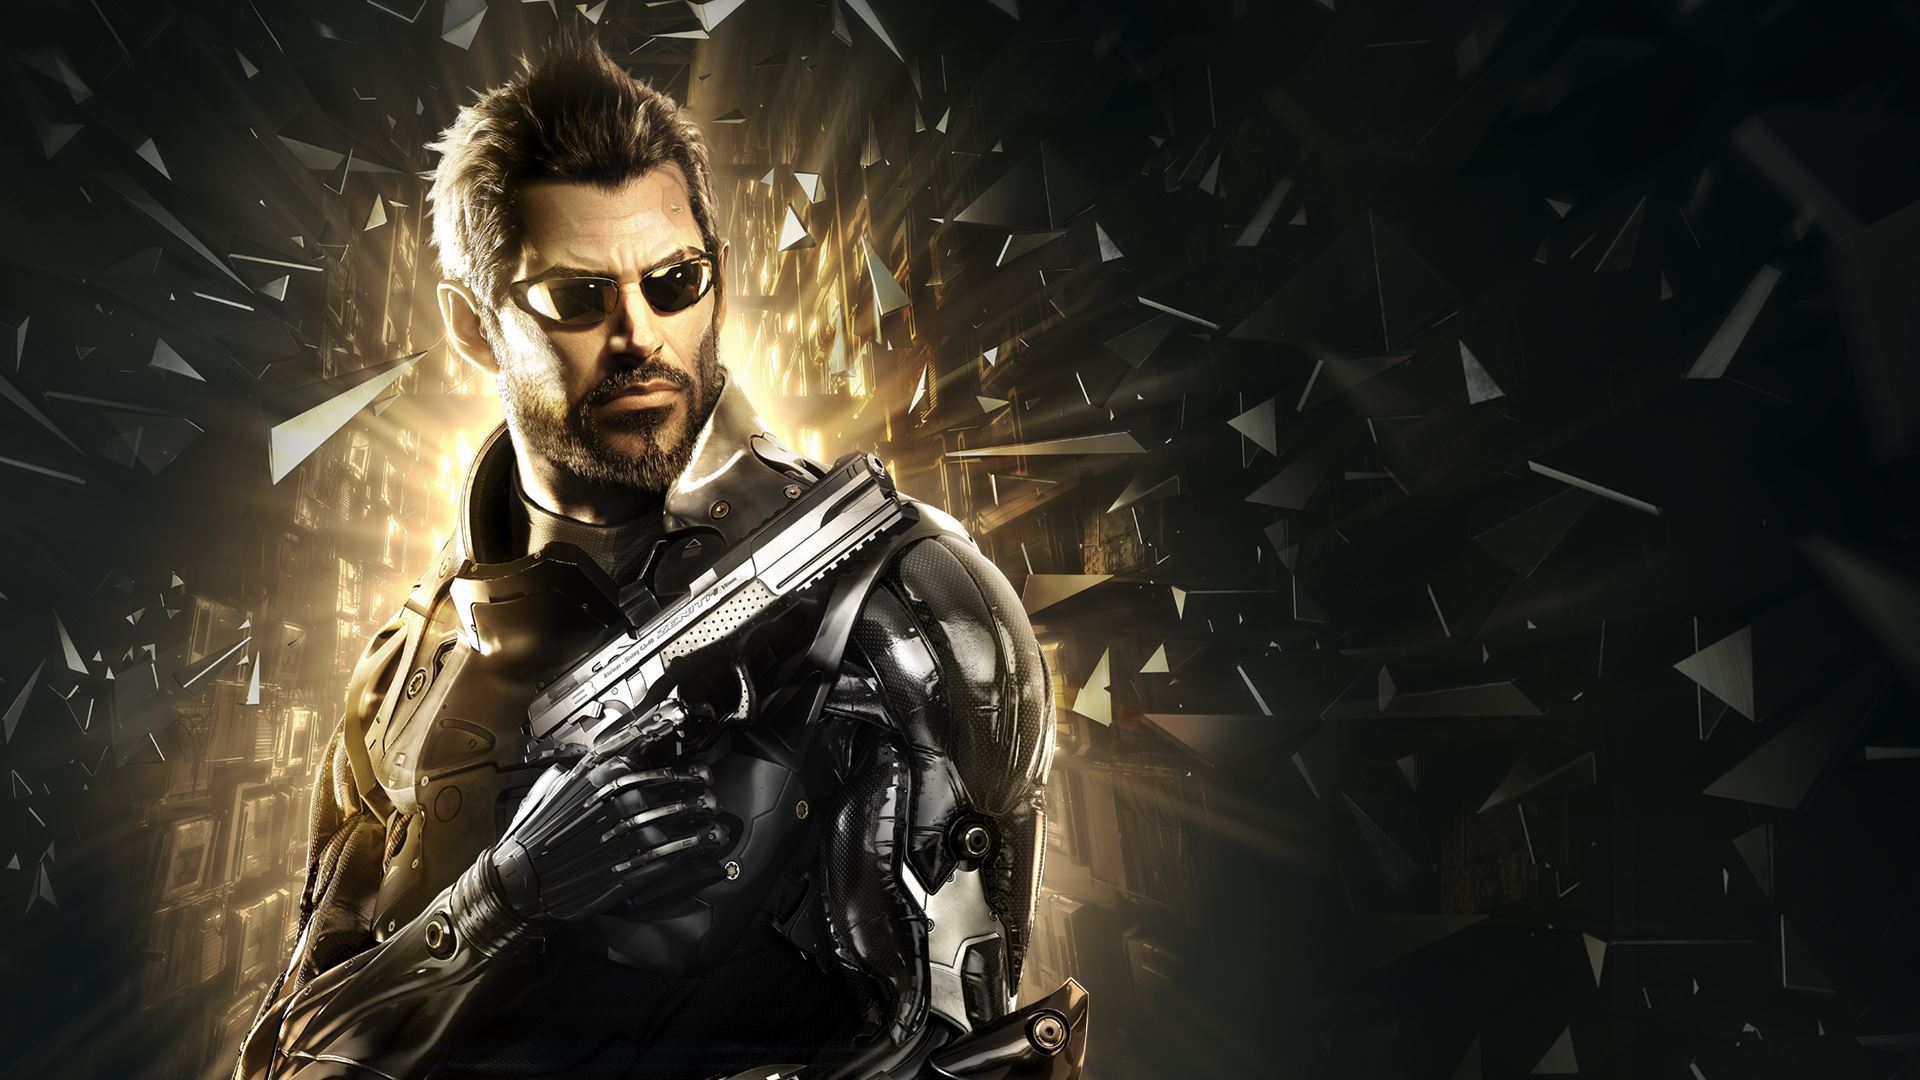 Trailer di lancio per Deus Ex: Mankind Divided